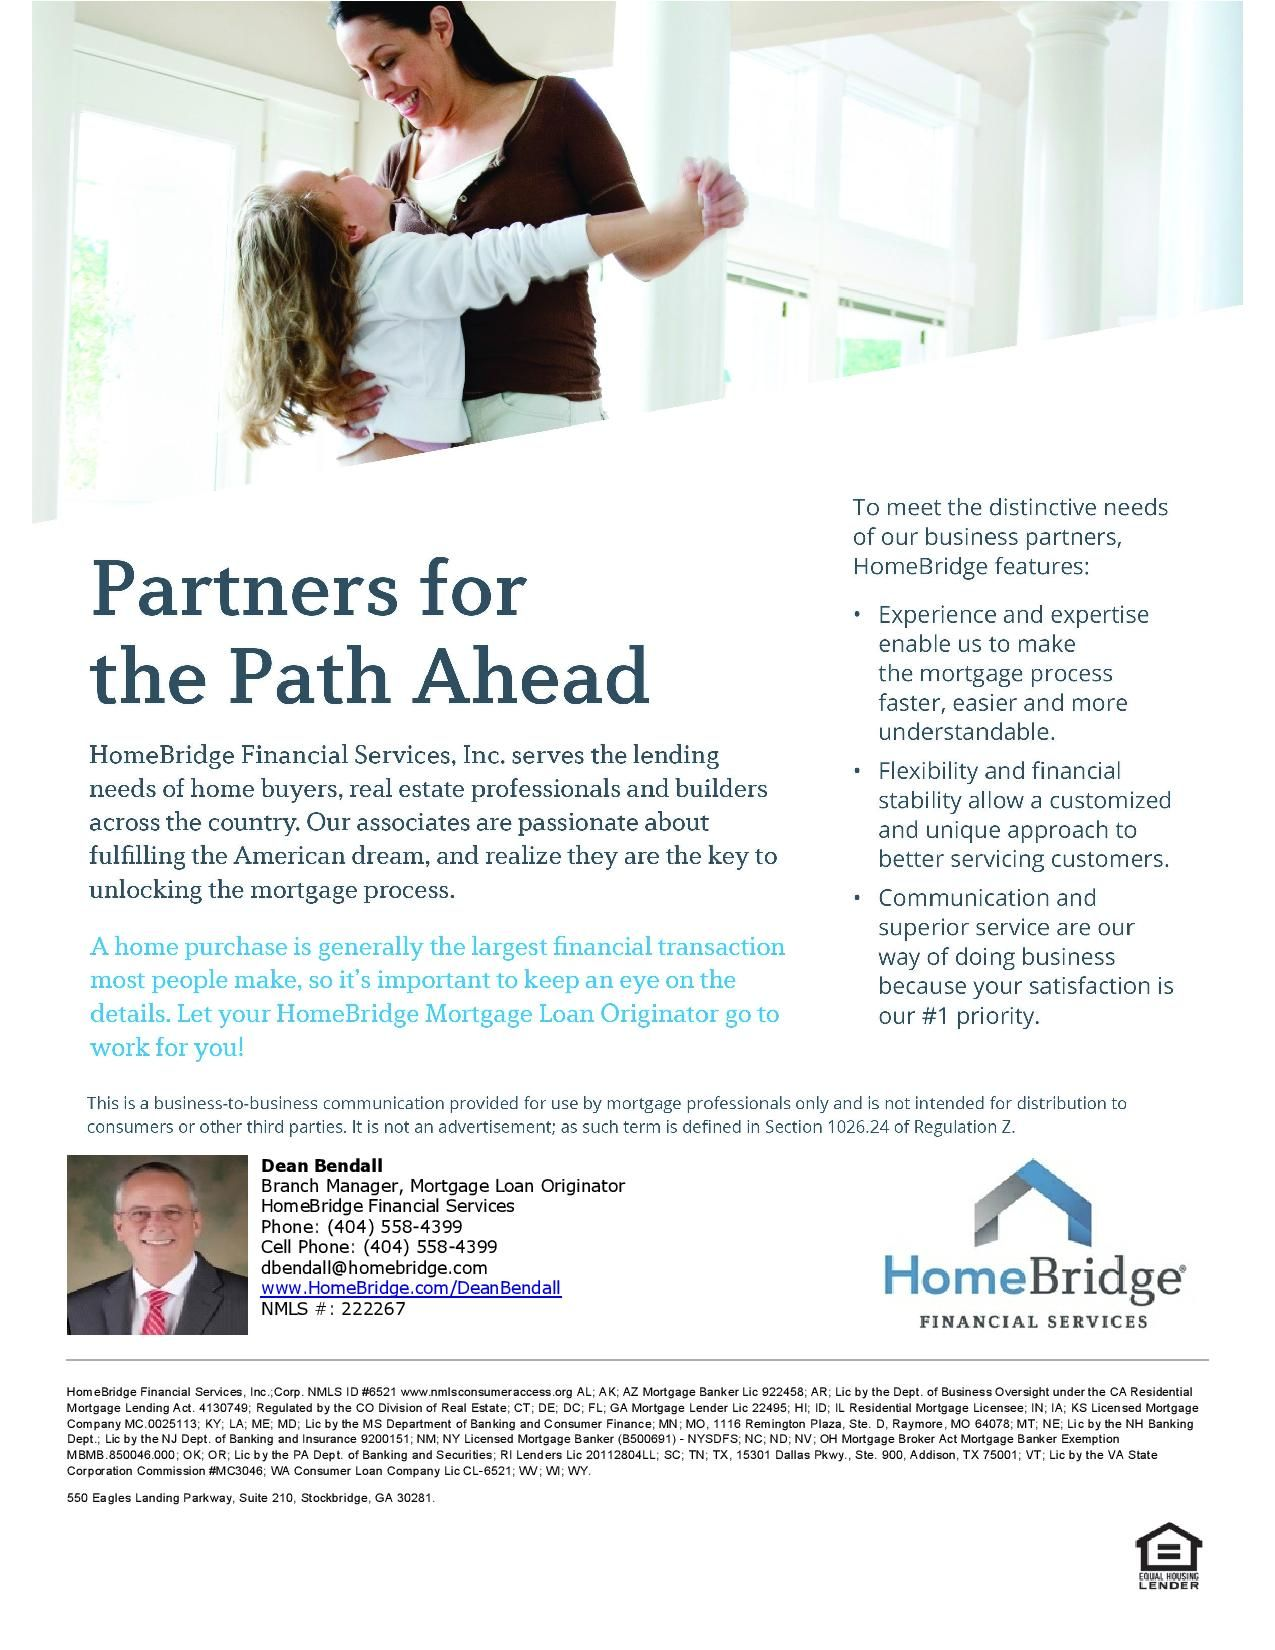 Dean Bendall With Images Mortgage Mortgage Process Mortgage